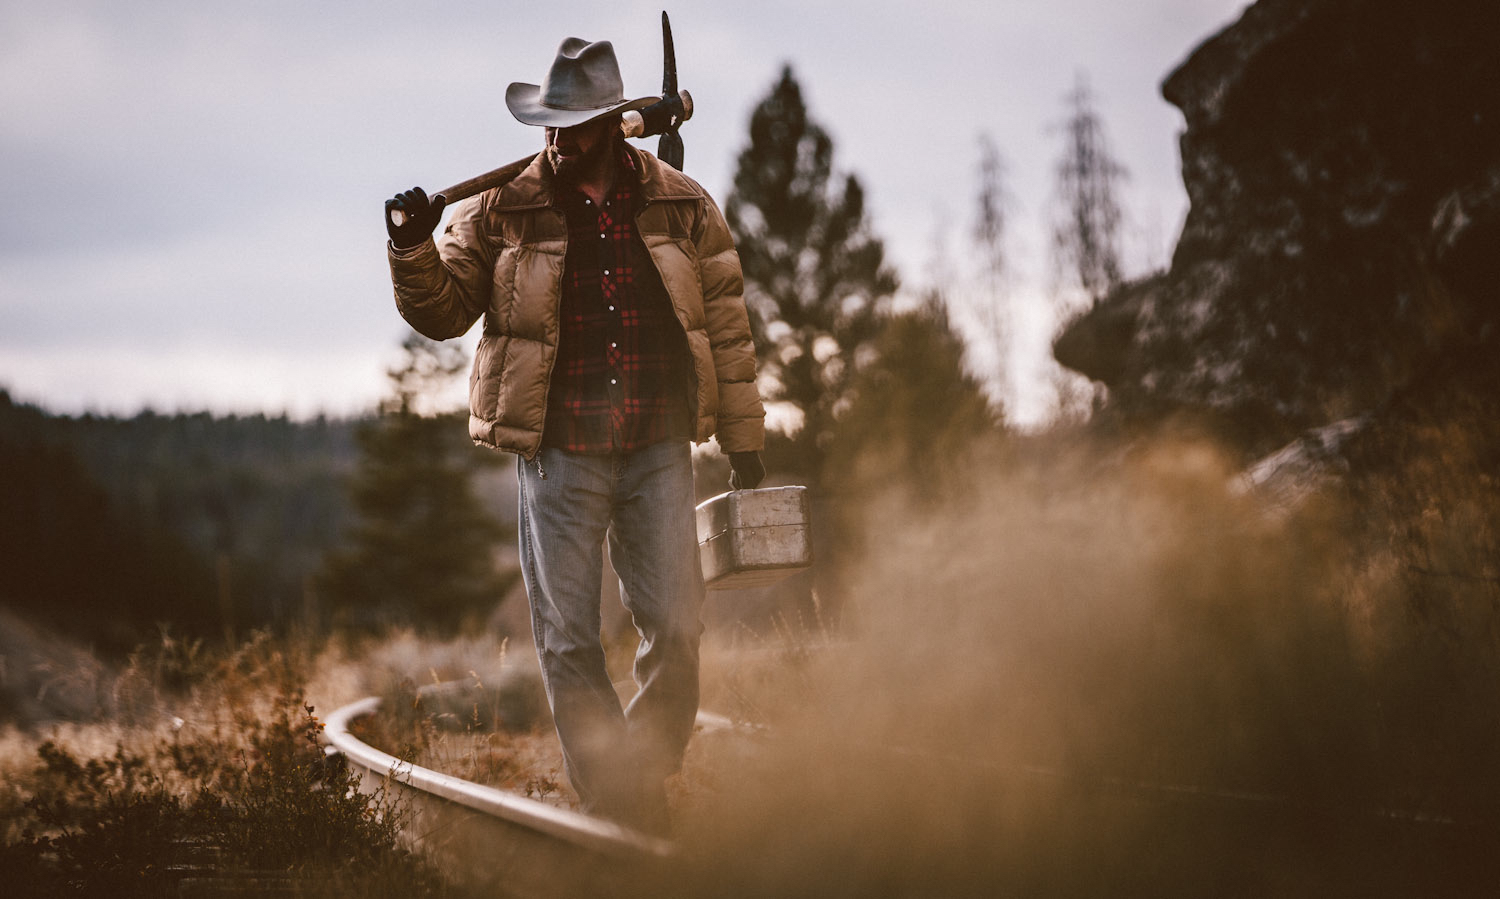 Marlboro man in Montana riding horse for Agloves campaign by Forest Woodward